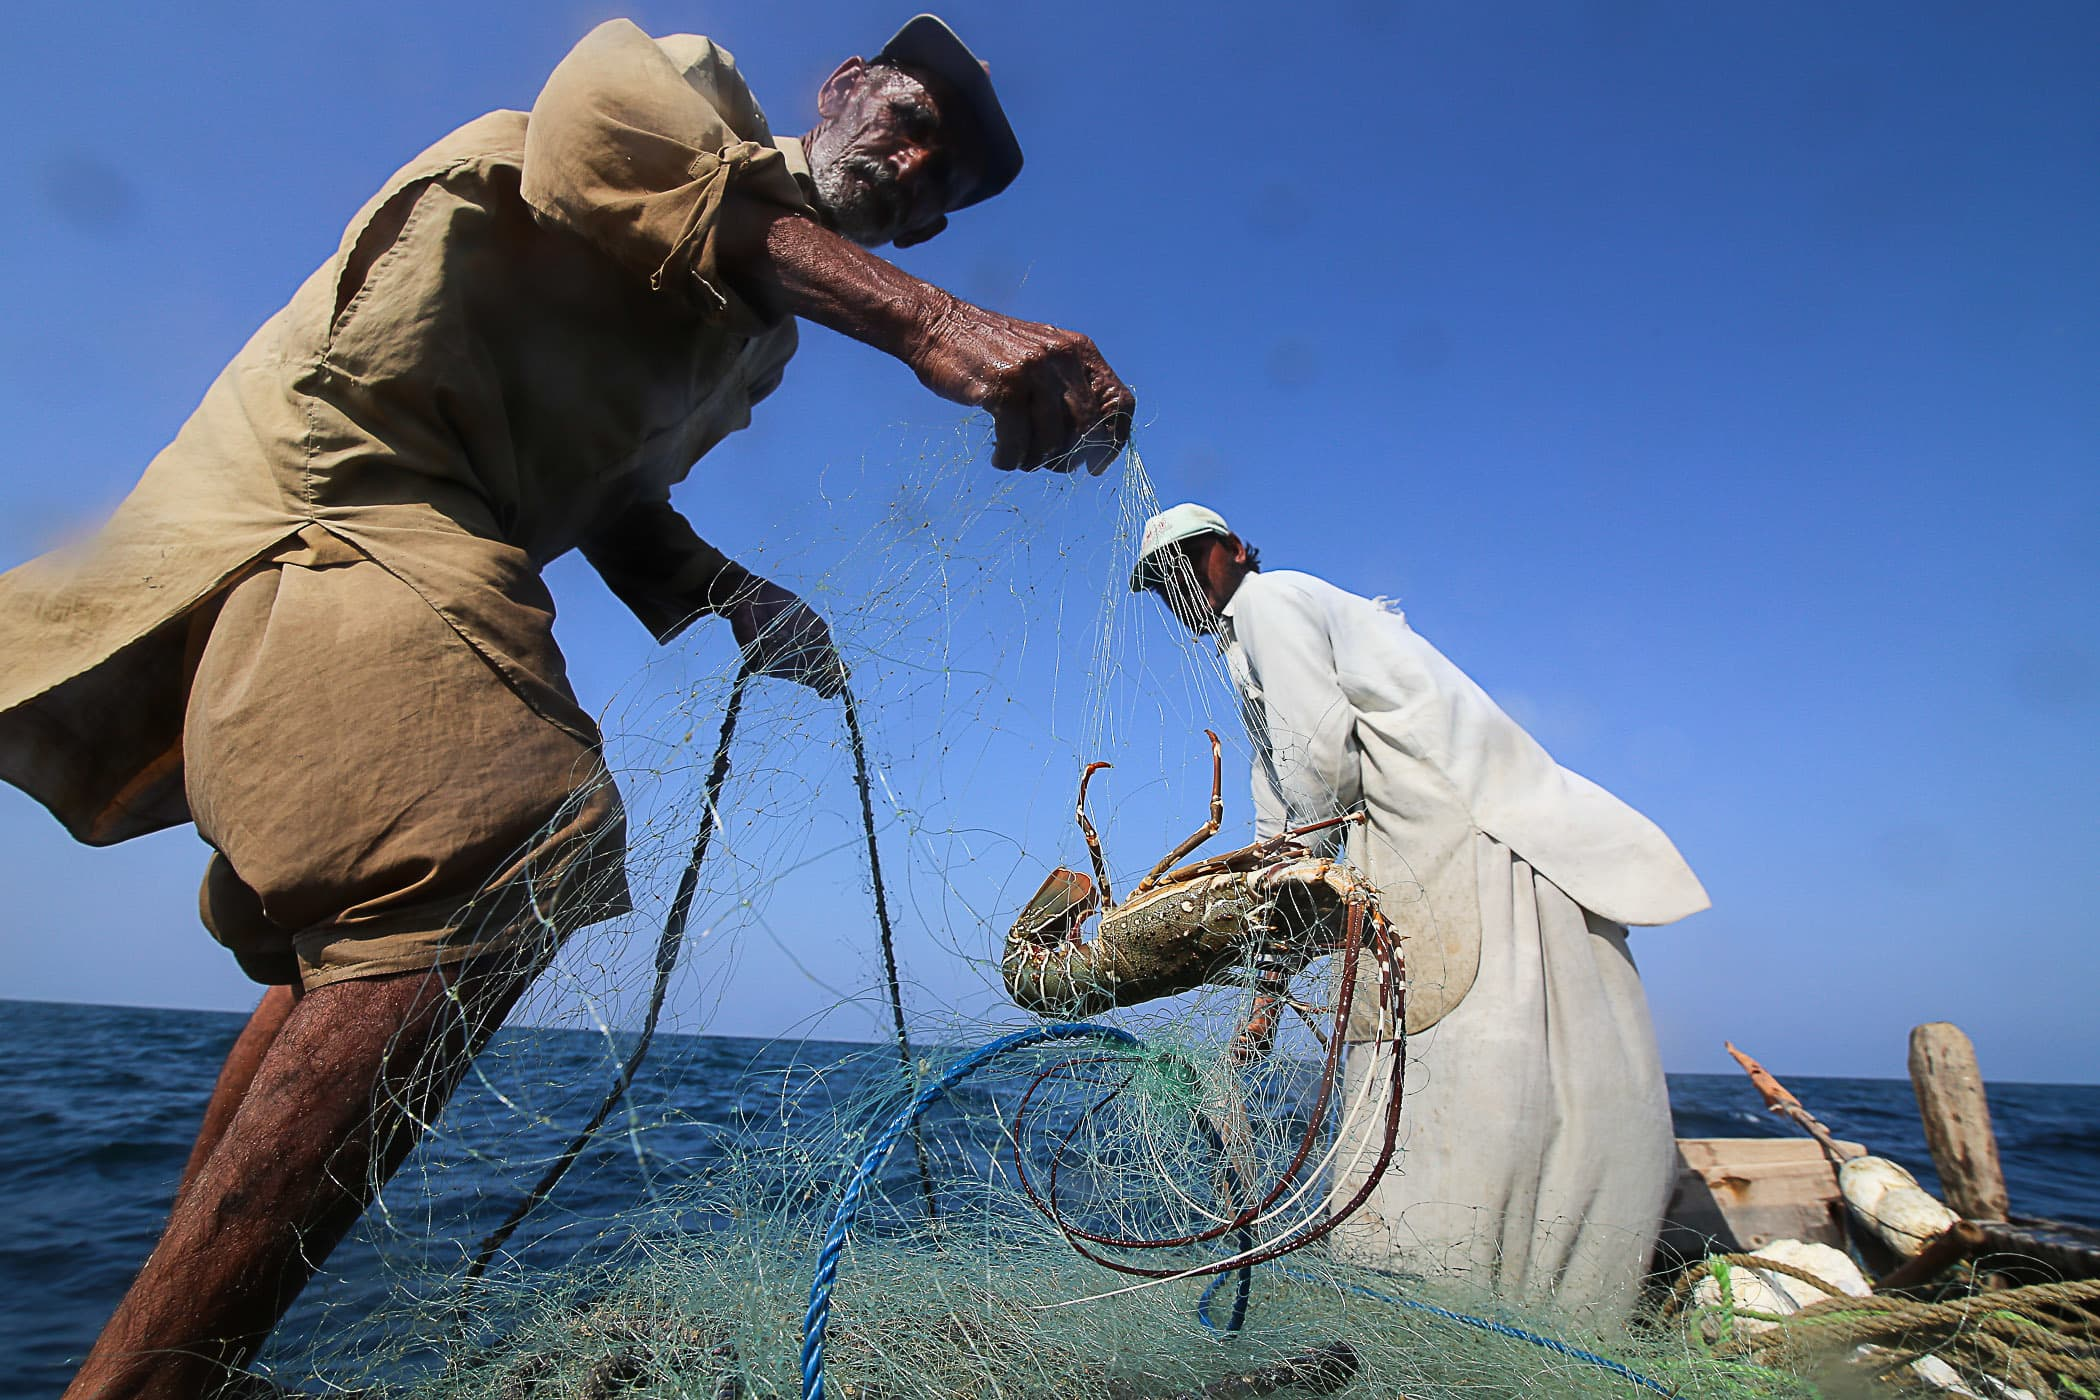 Chacha Majeed shows a lobster trapped in their net.